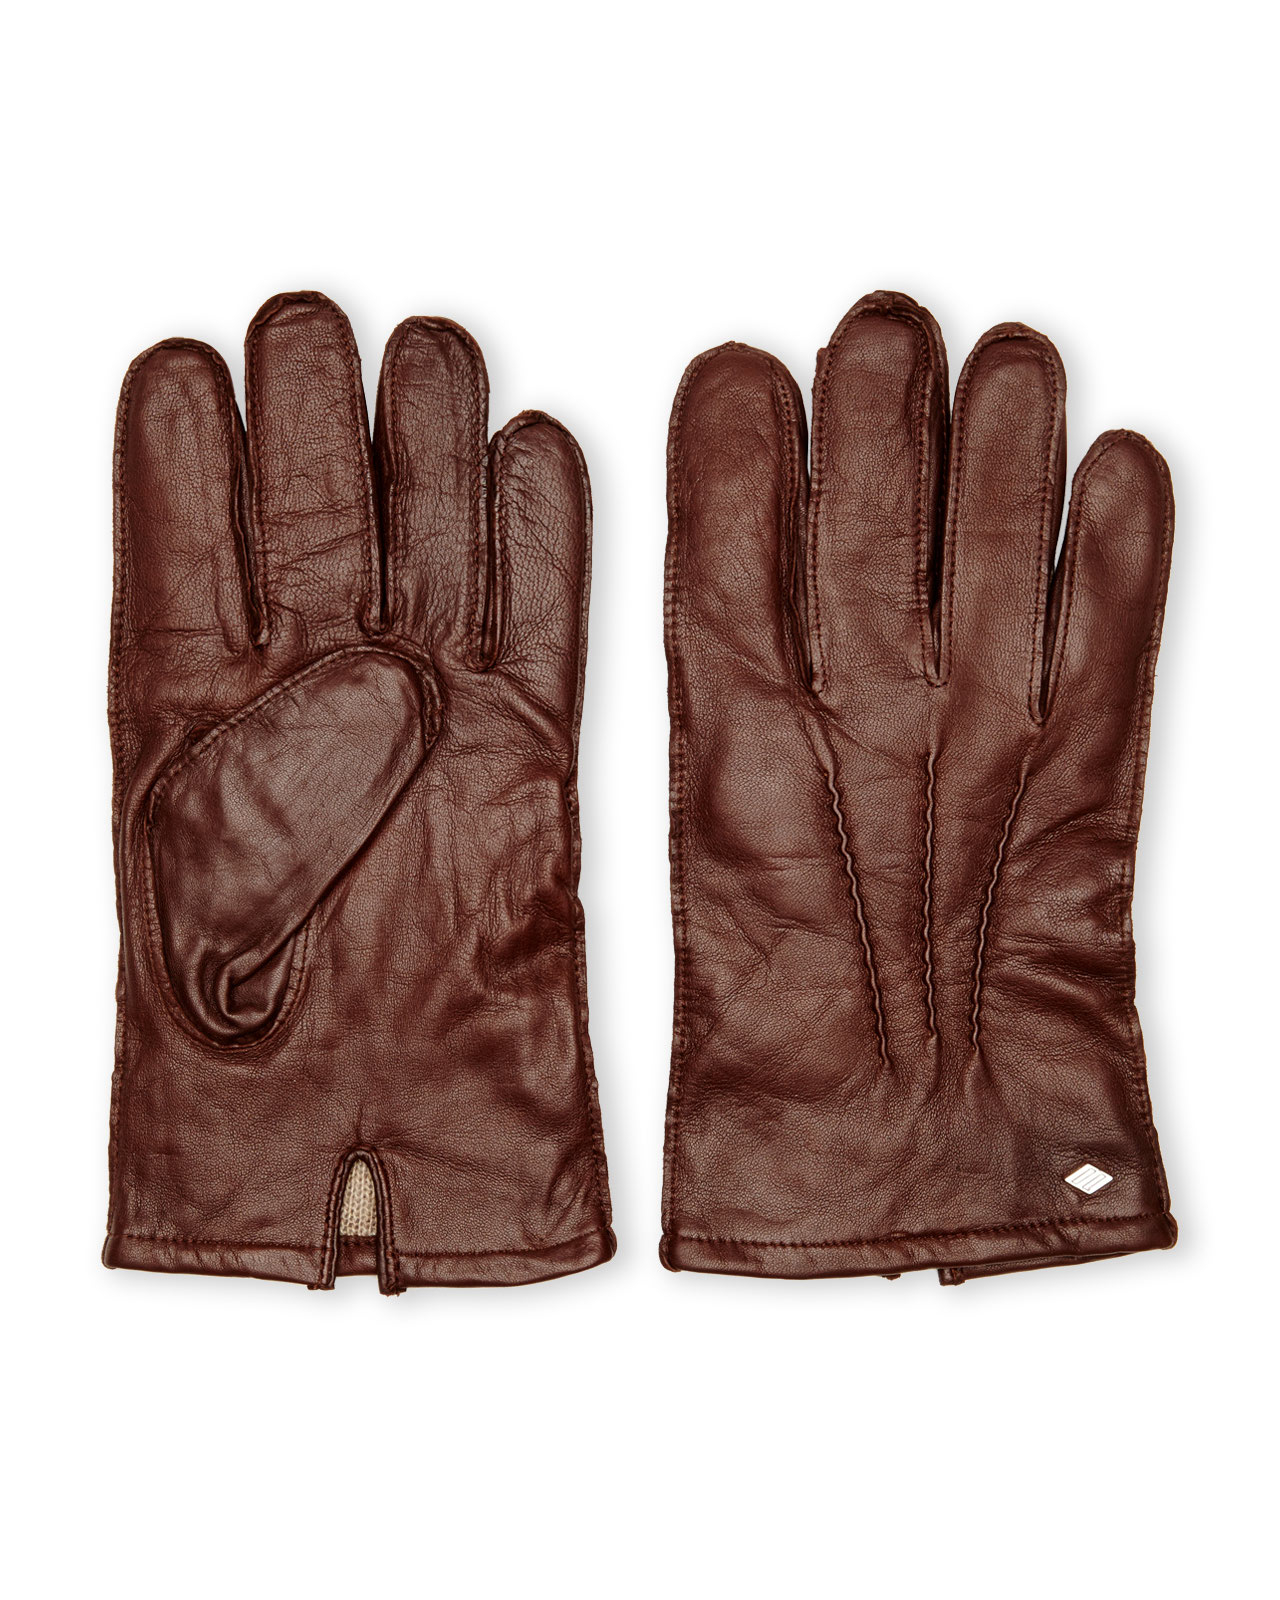 63d564ff1ee5a Gallery. Previously sold at  Century 21 · Men s Leather Gloves Men s Driving  ...